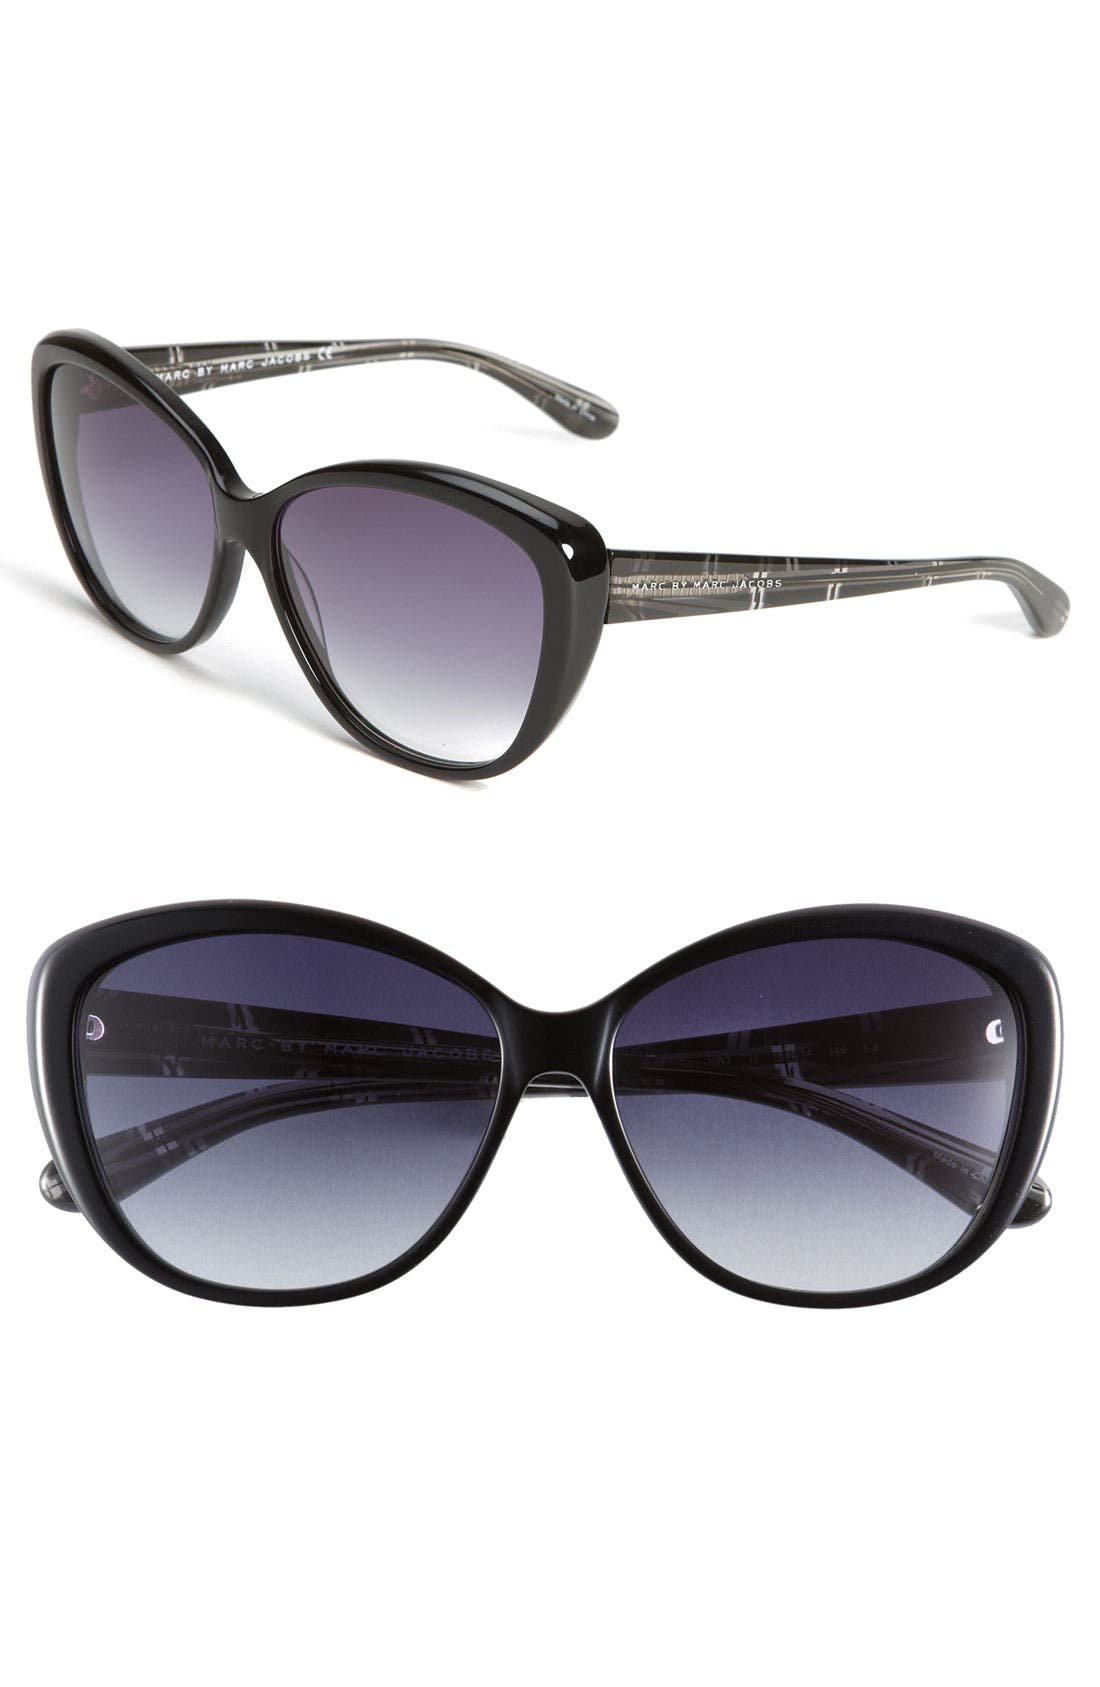 MARC BY MARC JACOBS, Cat's Eye Sunglasses, Main thumbnail 1, color, 001